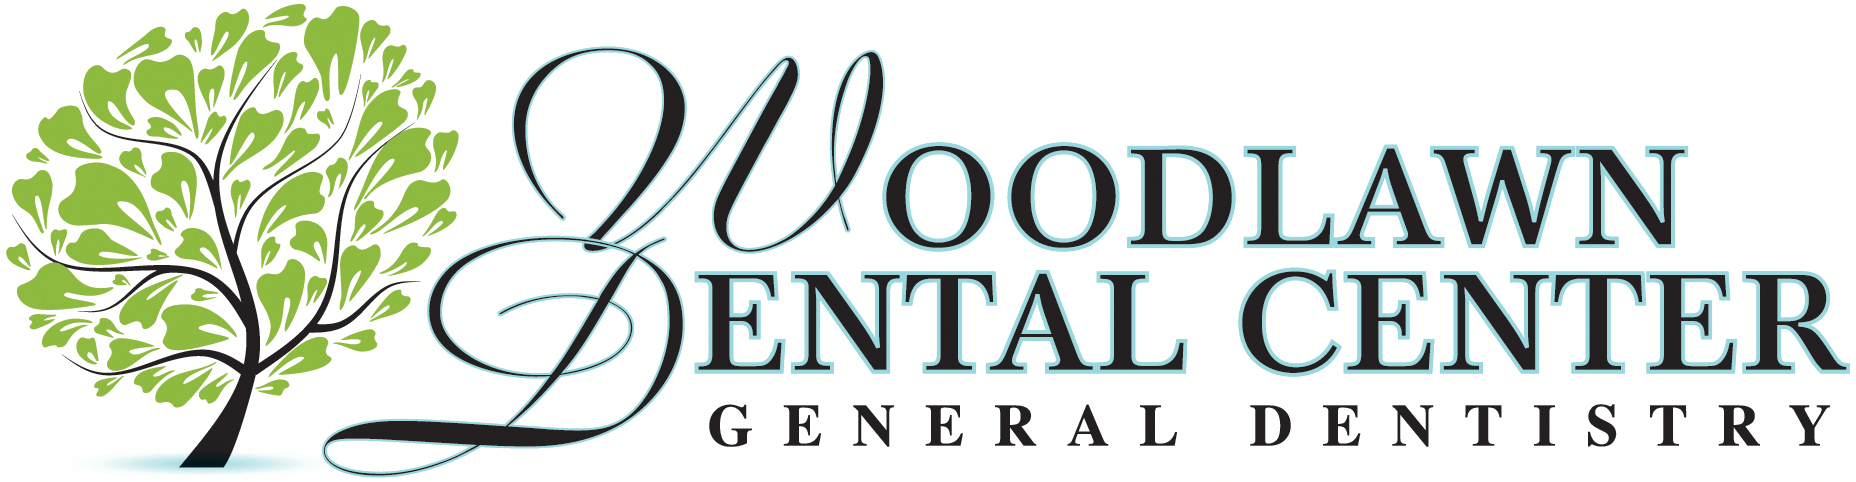 Woodlawn Dental Center logo